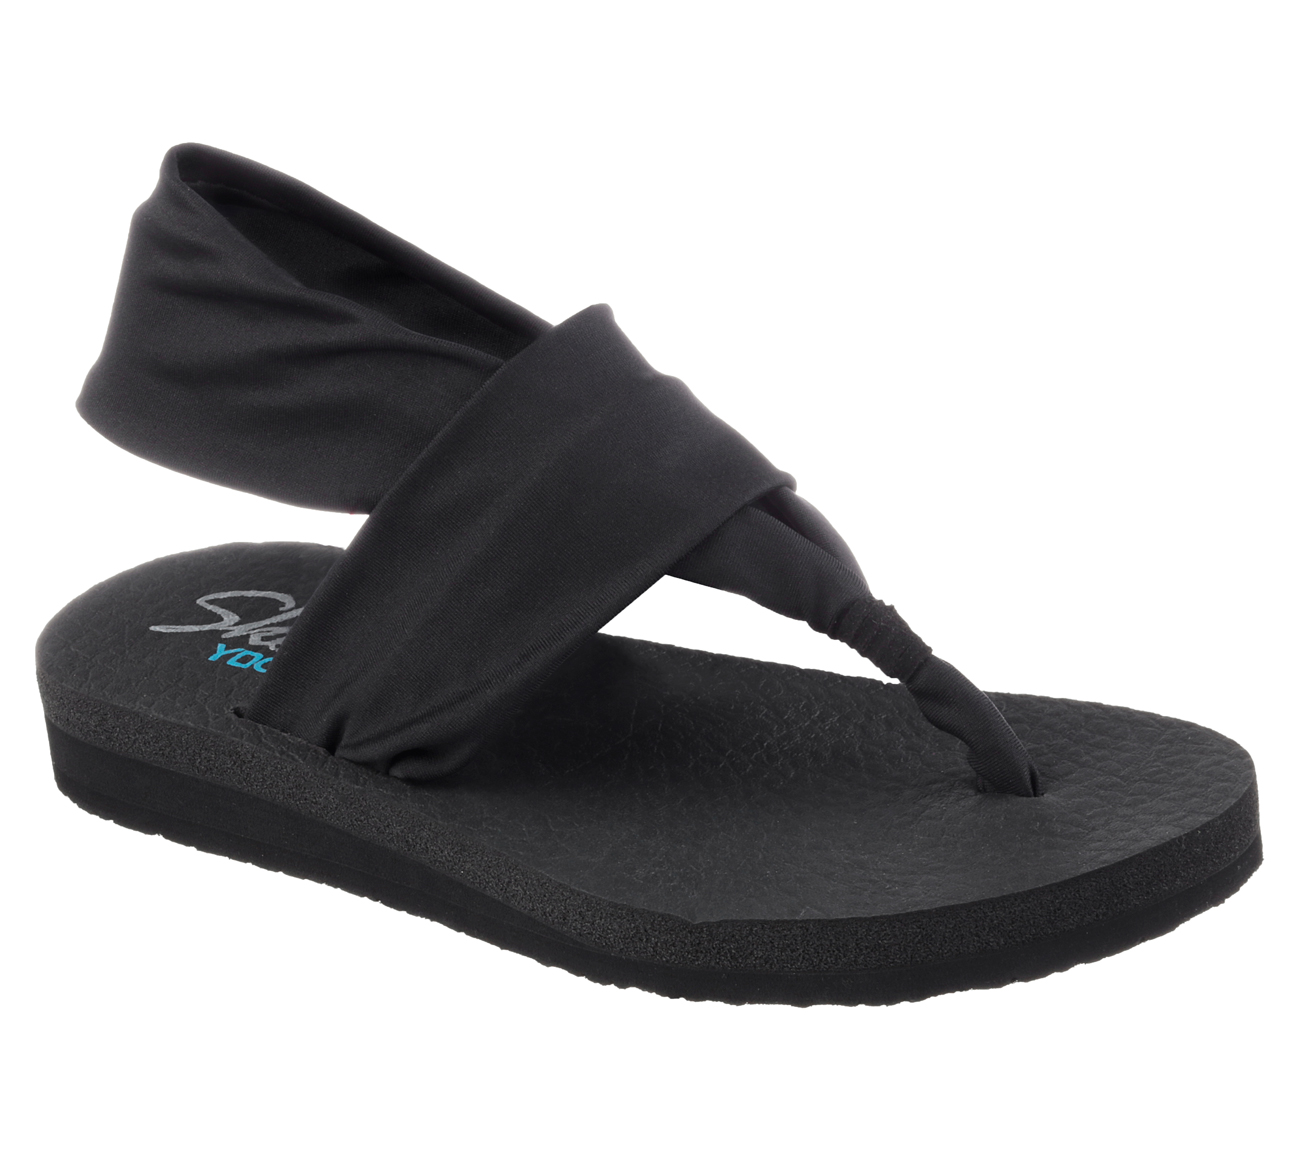 Yoga Shoes Skechers: Buy SKECHERS MeditationStrappy Sandals Shoes Only $38.00